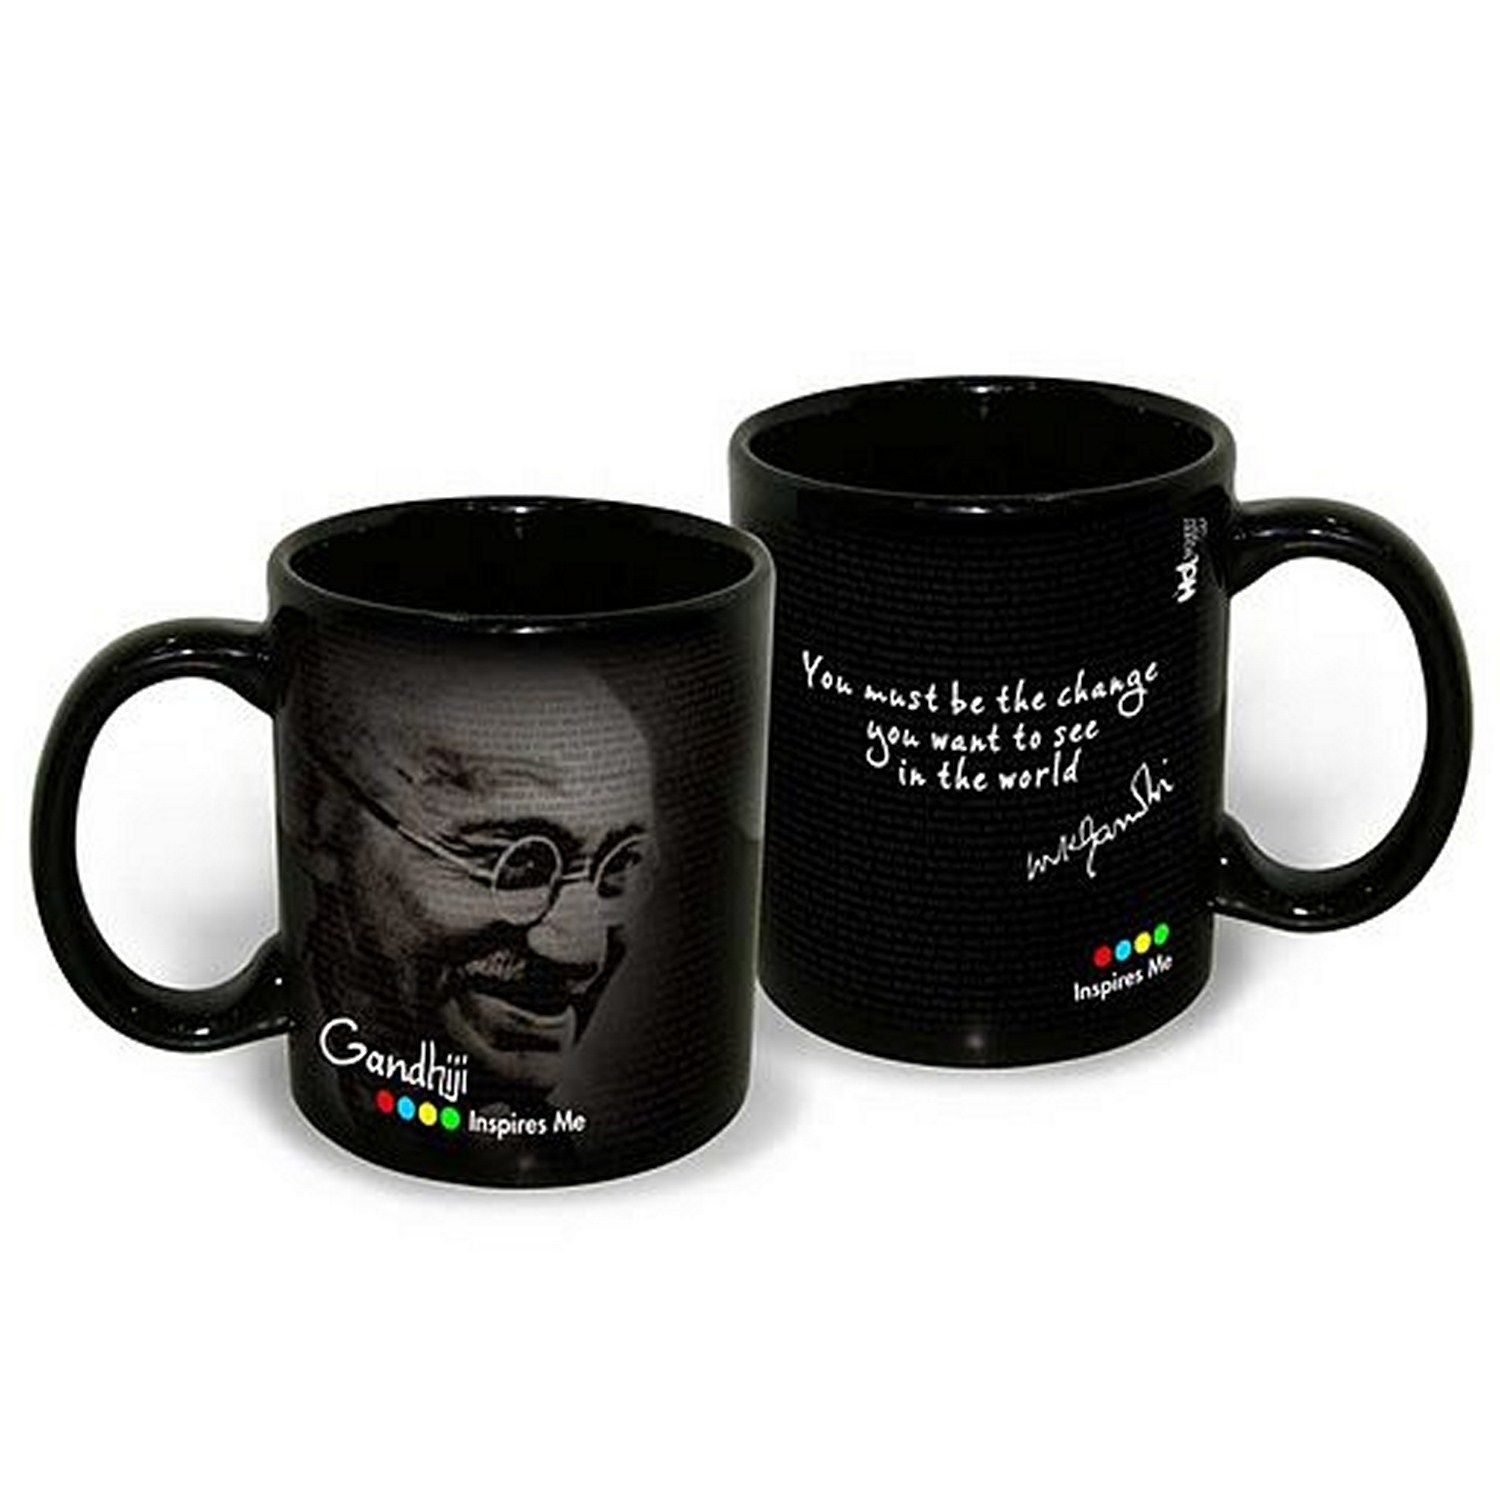 Buy #HotMuggs IM #Gandhiji you must be the #change Online ...